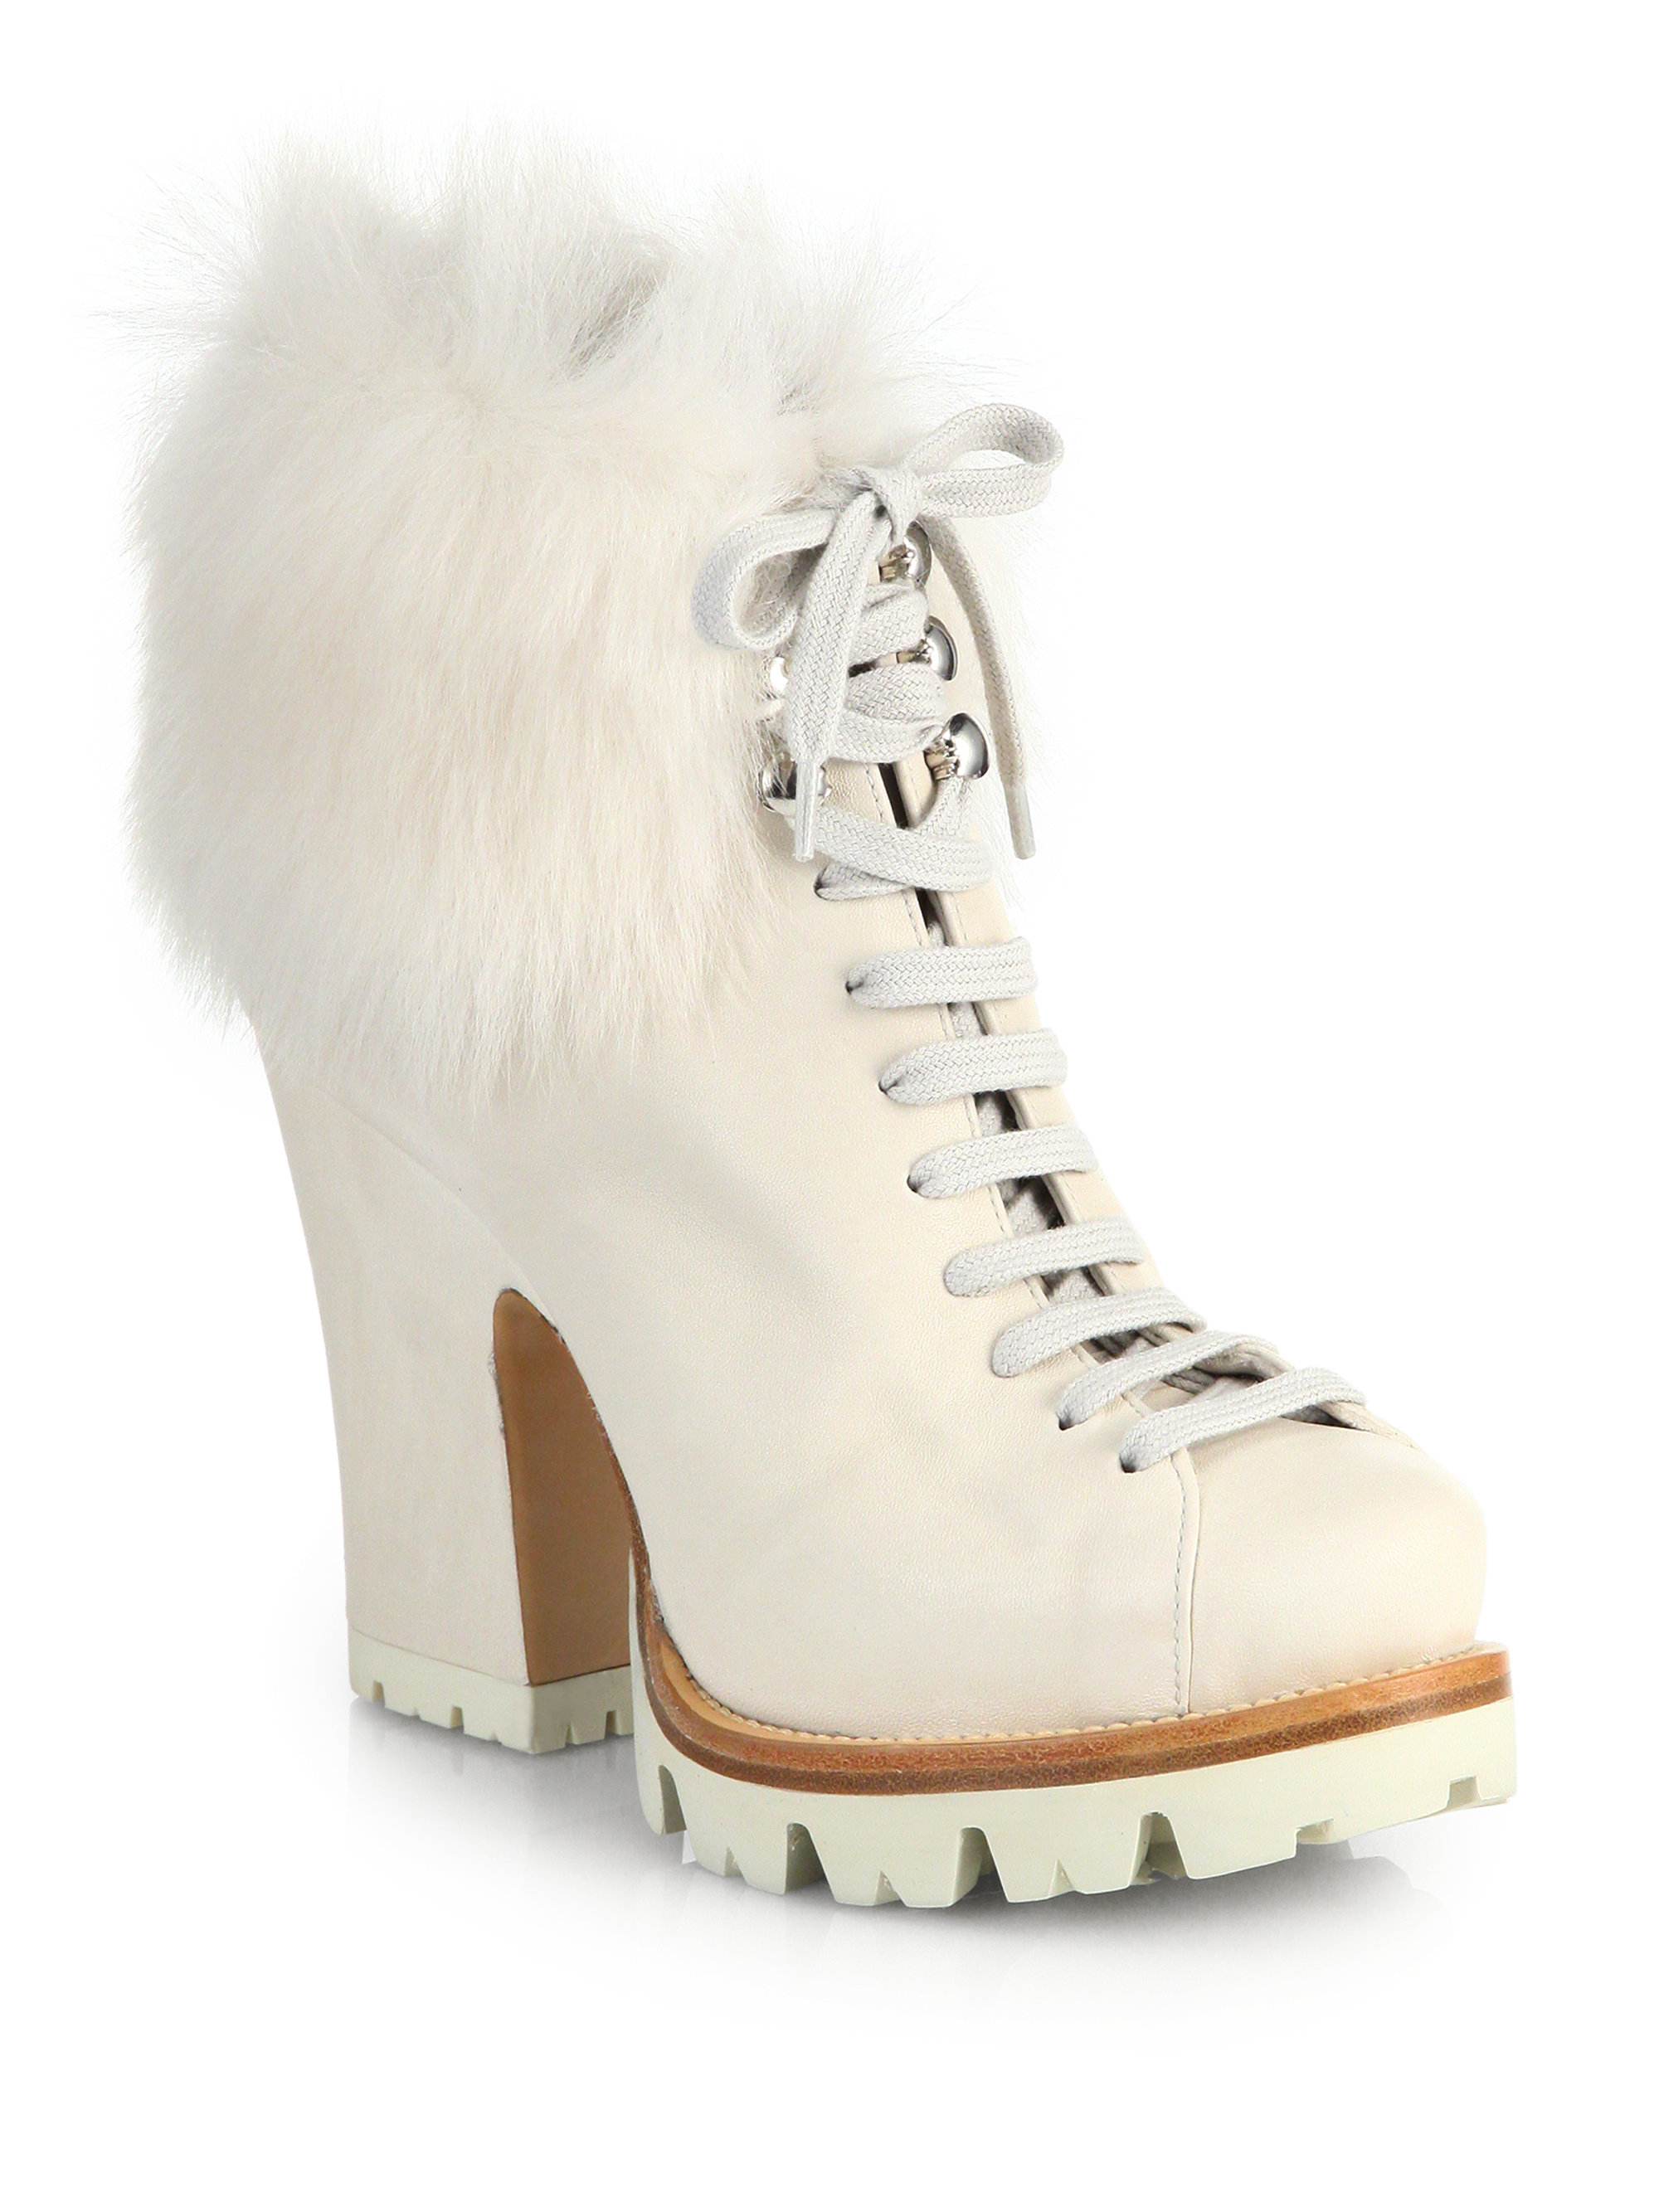 Prada Lug Sole Leather Amp Fur Ankle Boots In White Lyst